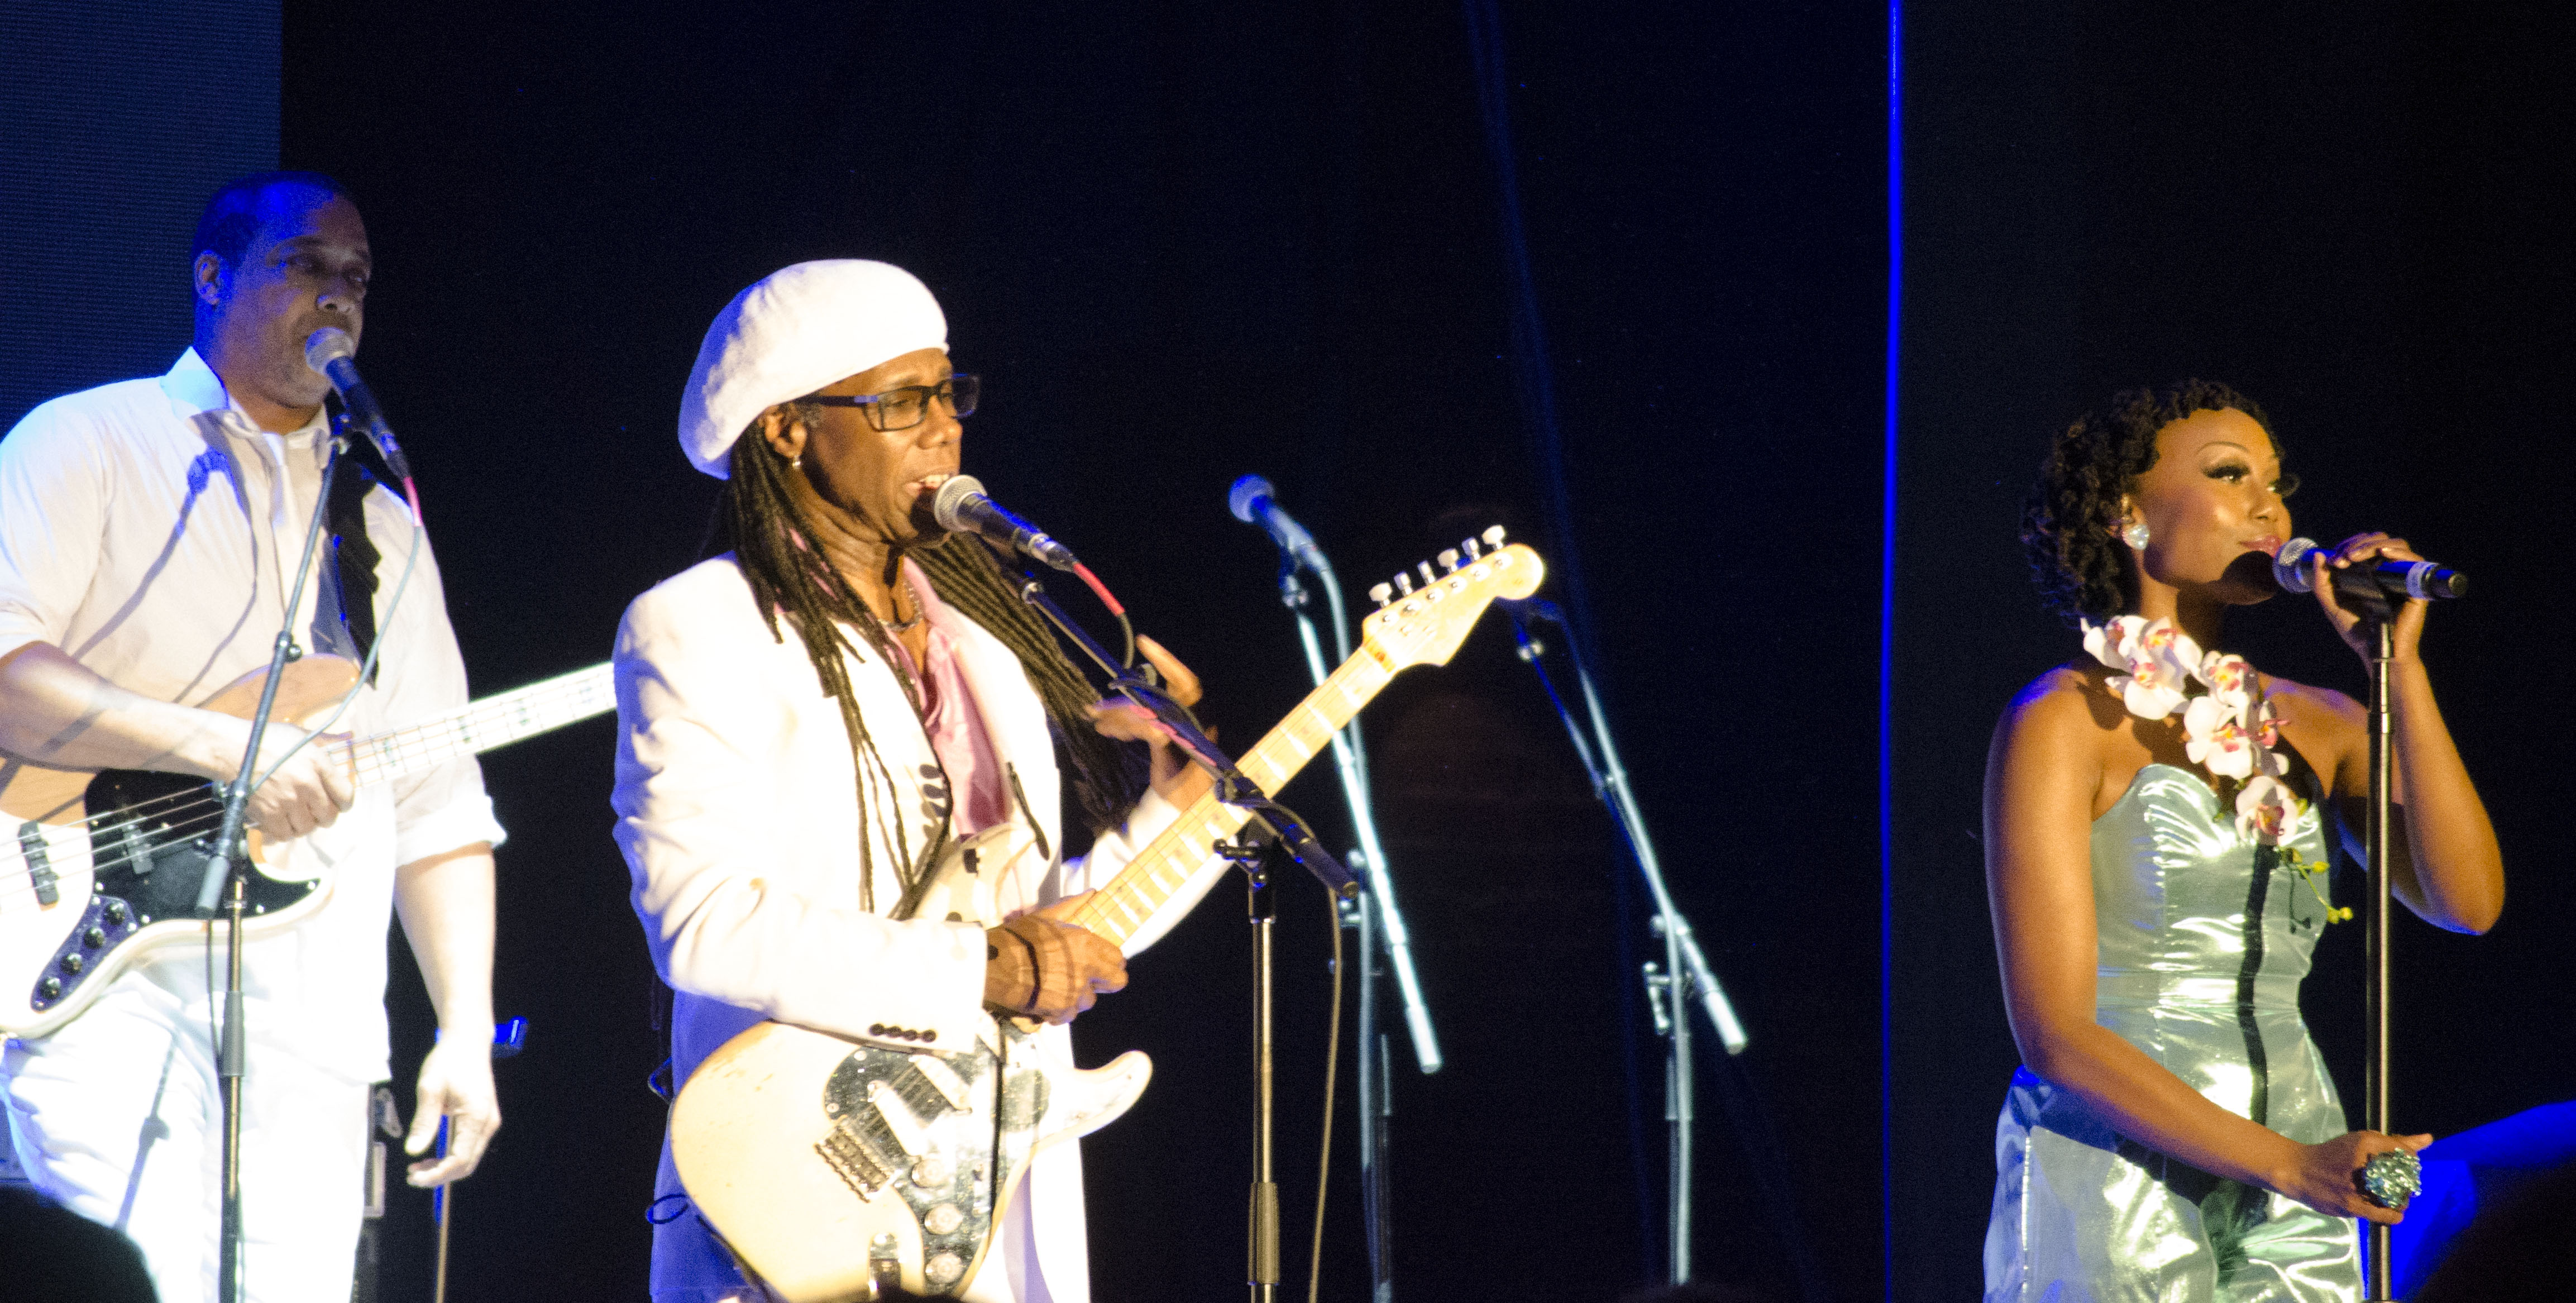 PHOTOS Nile Rodgers and CHIC at Moogfest 2014